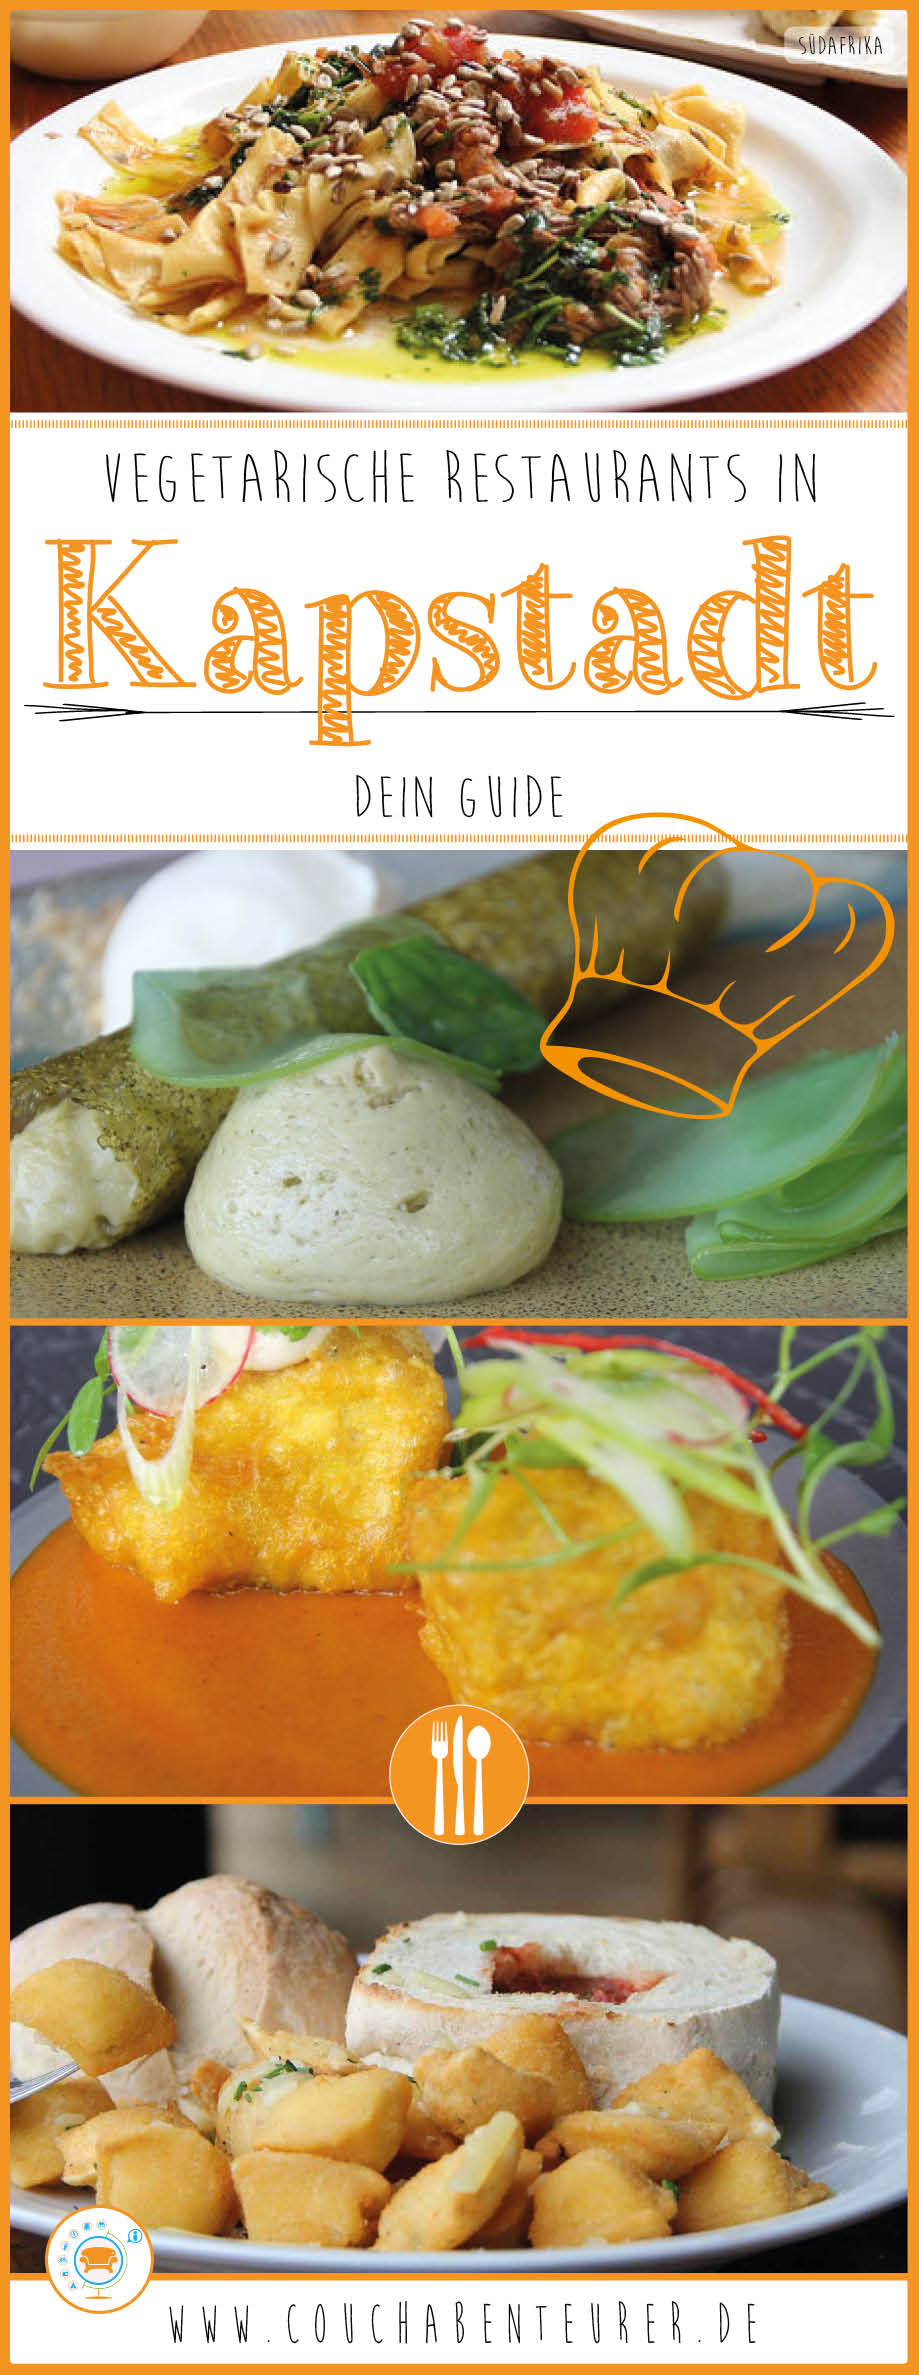 Vegetarische-Restaurants-Kapstadt-dein-guide